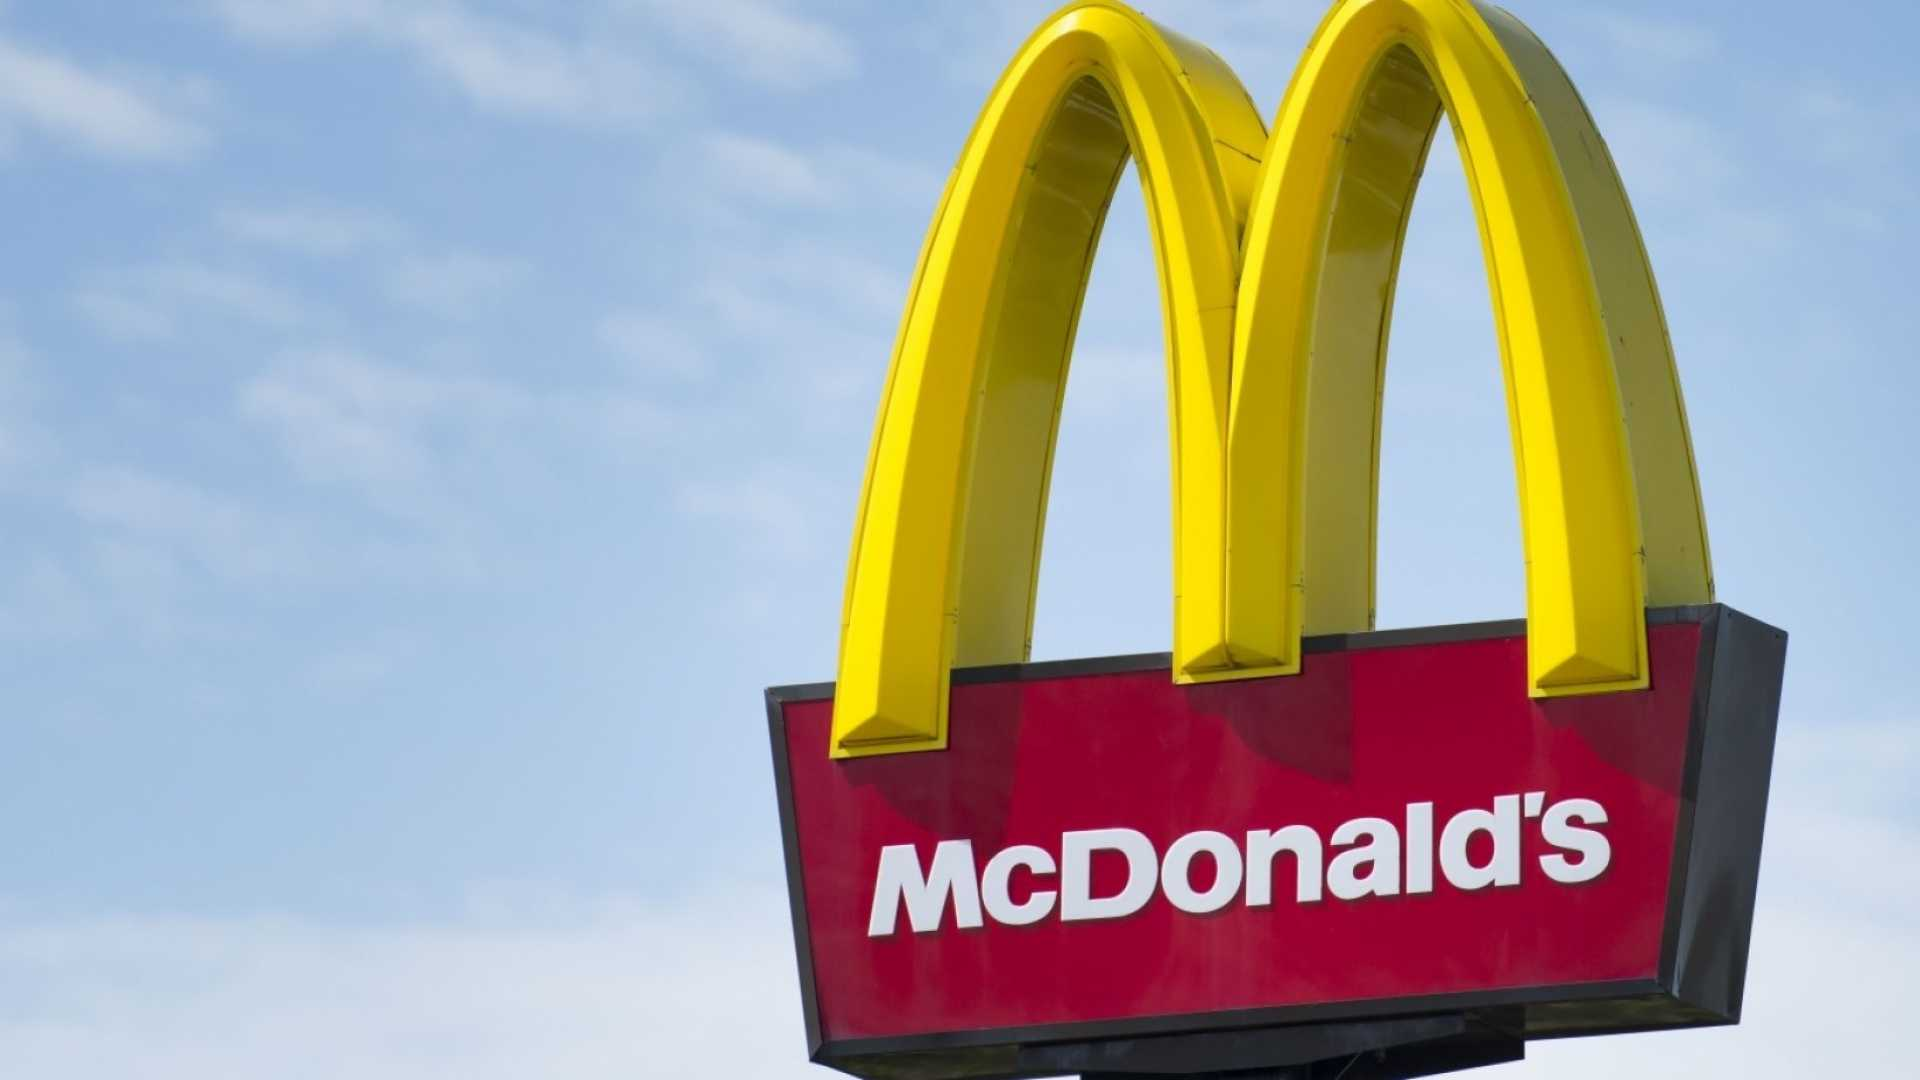 McDonald's Made a Menu Change Nobody Could Have Predicted a Year Ago. Every Smart Business Leader Should Pay Attention